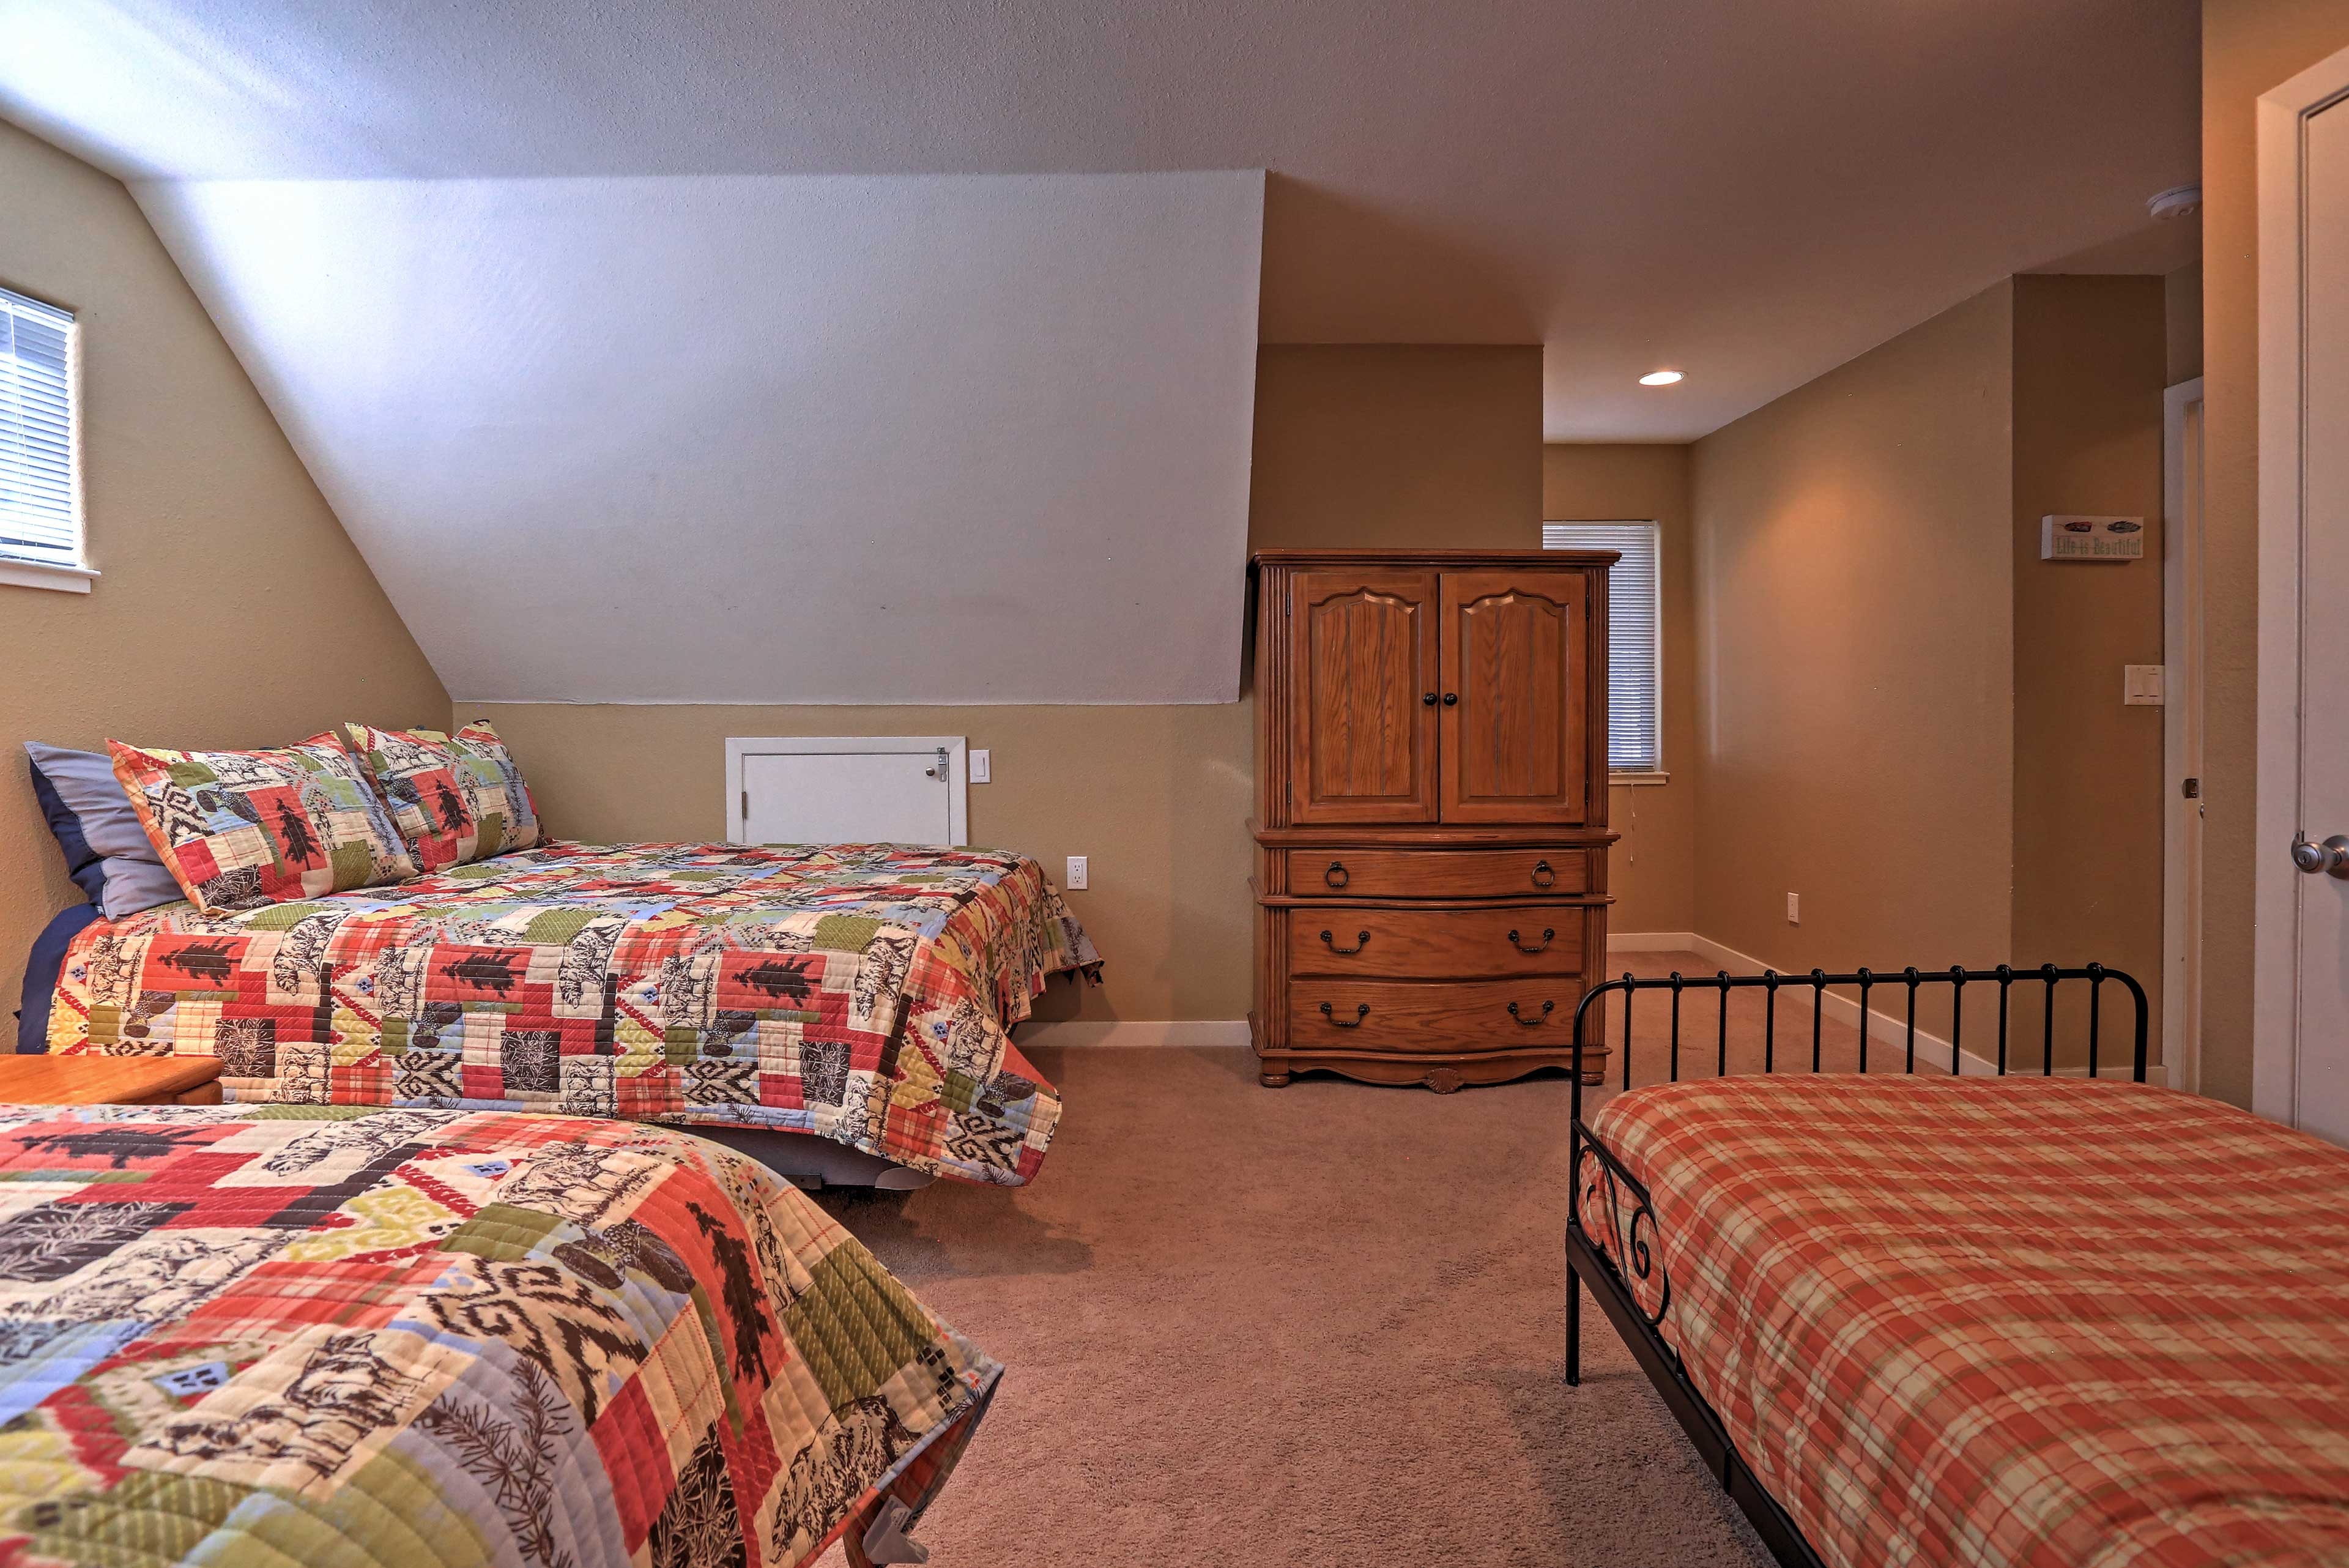 Siblings or friends will love sharing the upstairs bedrooms.